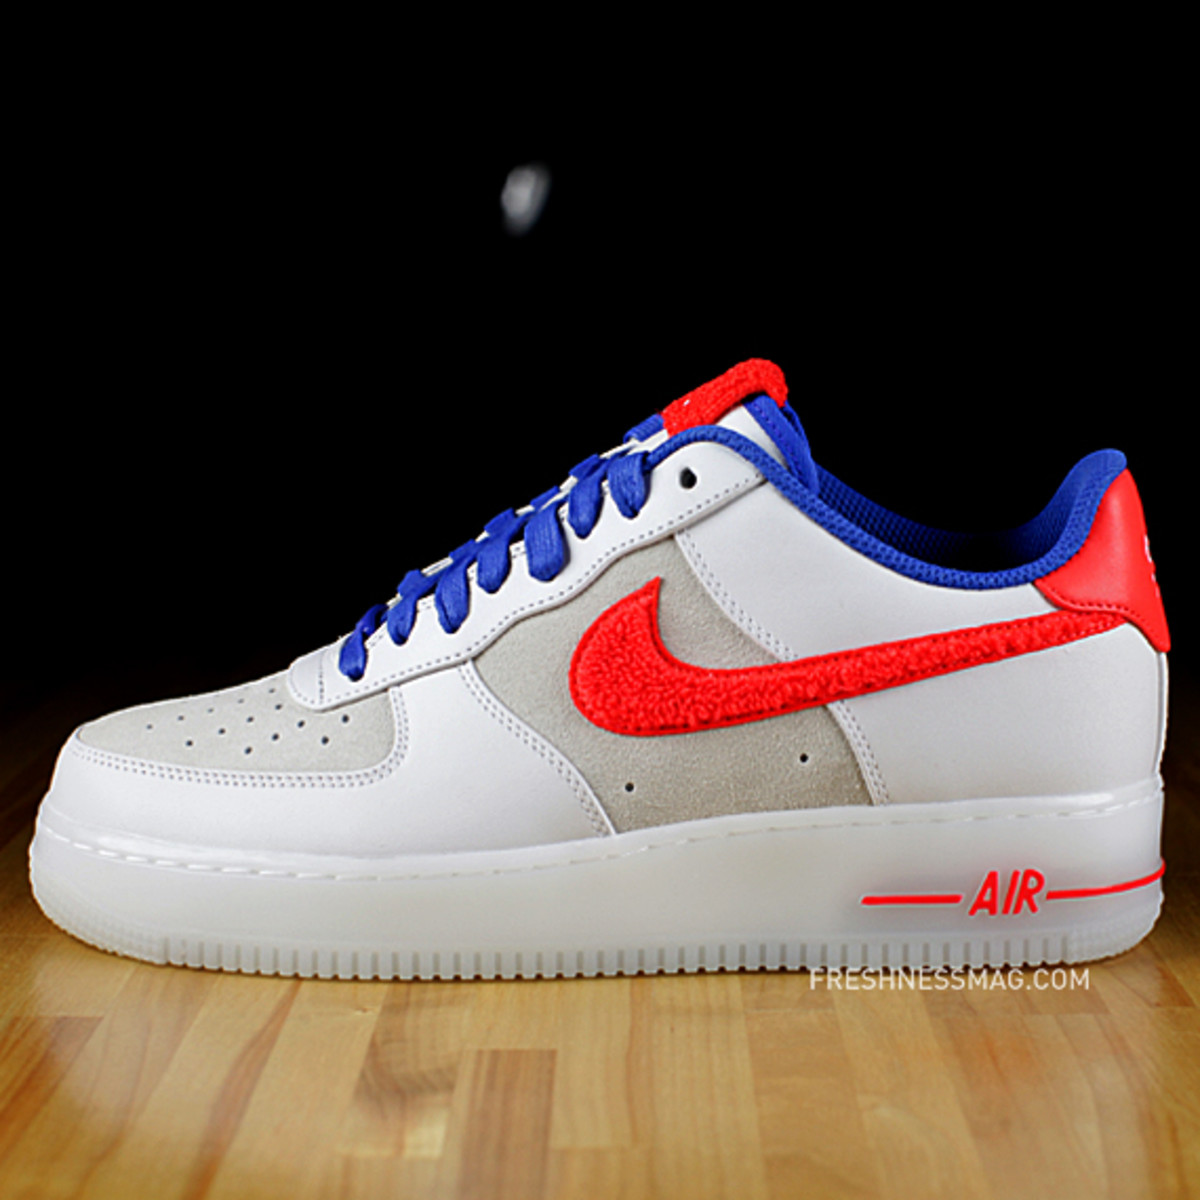 Nike Air Force 1 Supreme – Year Of The